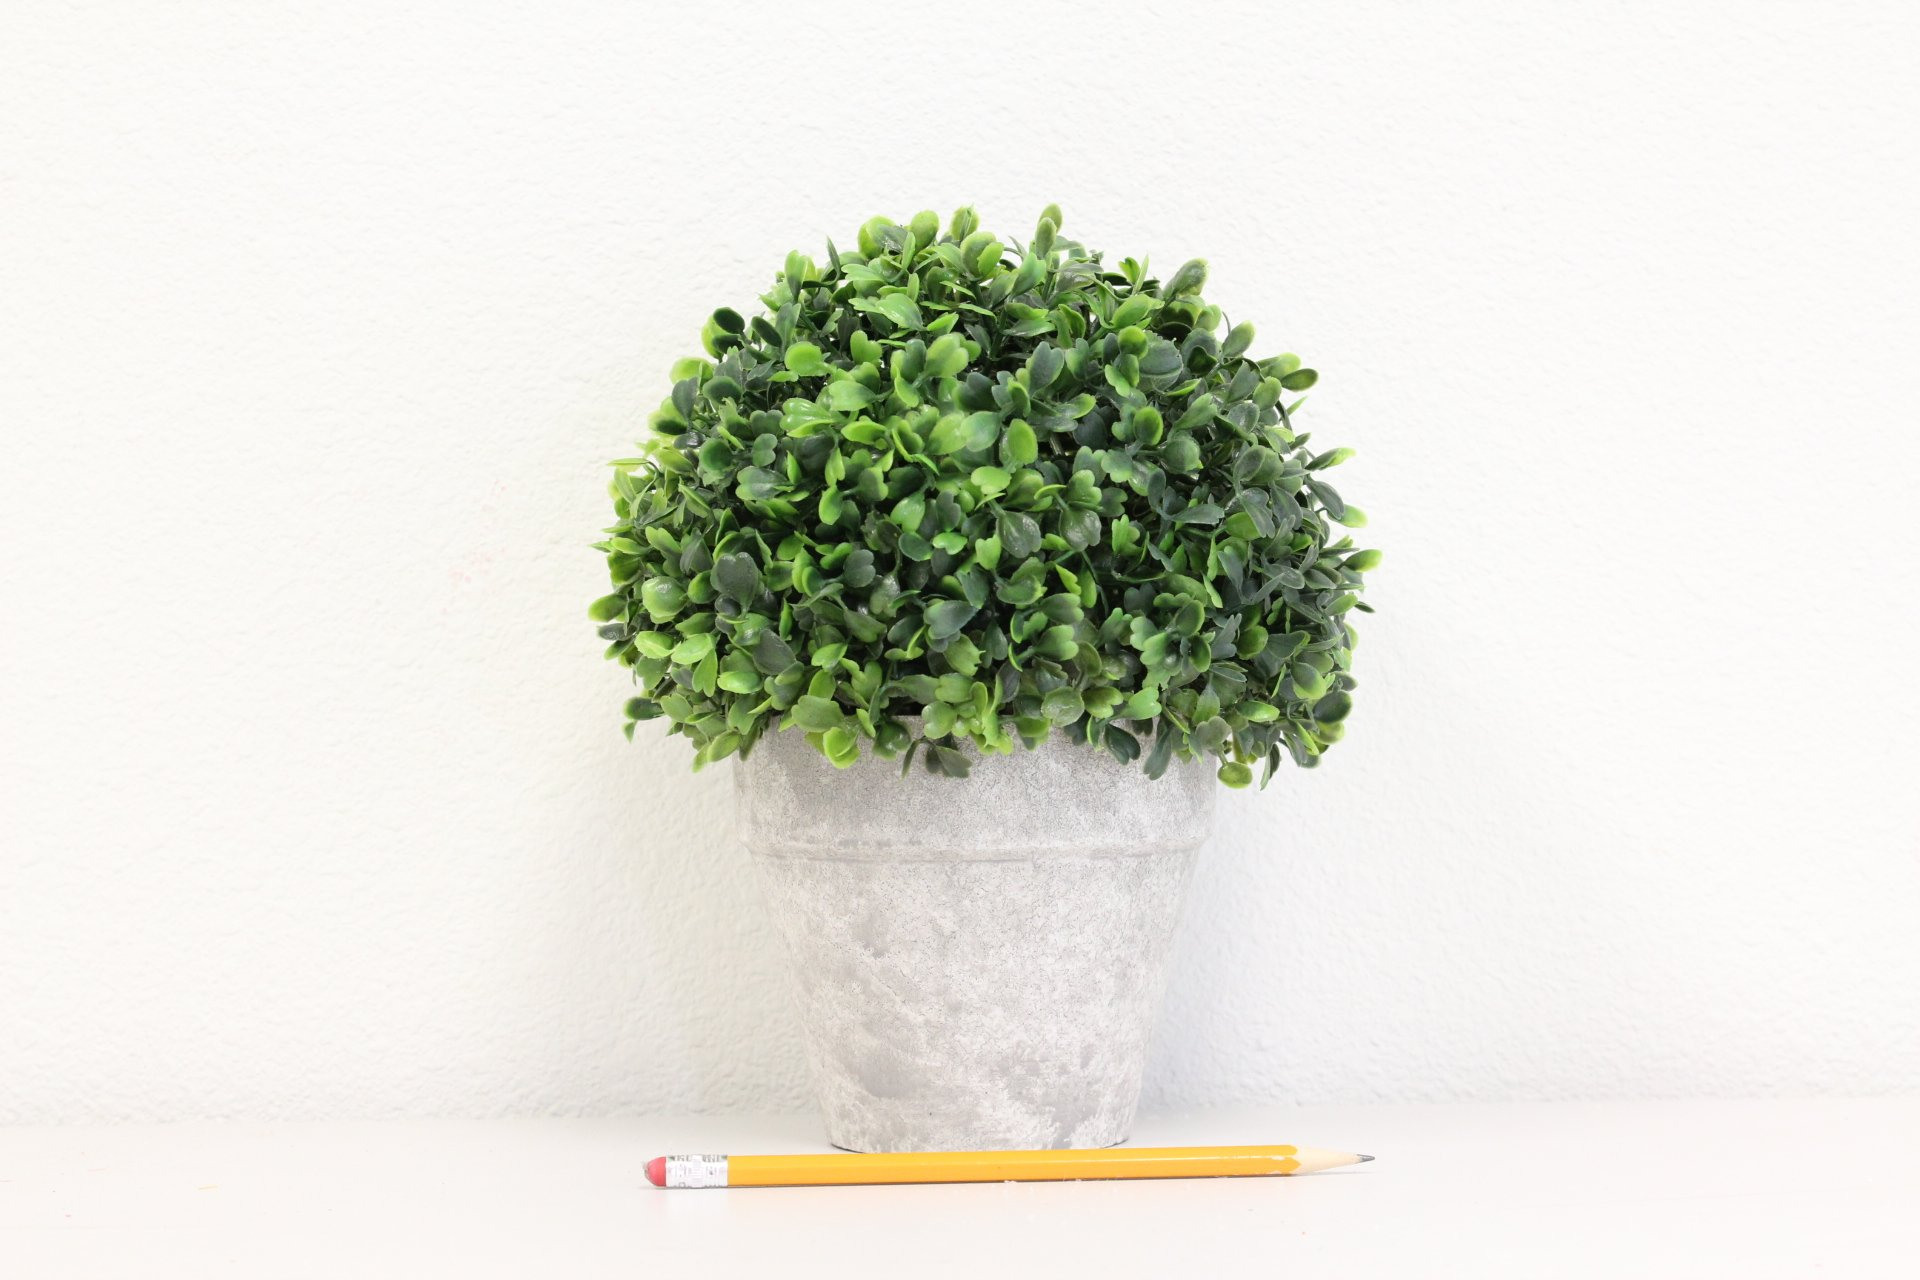 Artificial Boxwood Topiary Ball Table Top Plant With Decorative Pot 8 inches Tall Realistic Indoor Faux Decor by Silk Road Home